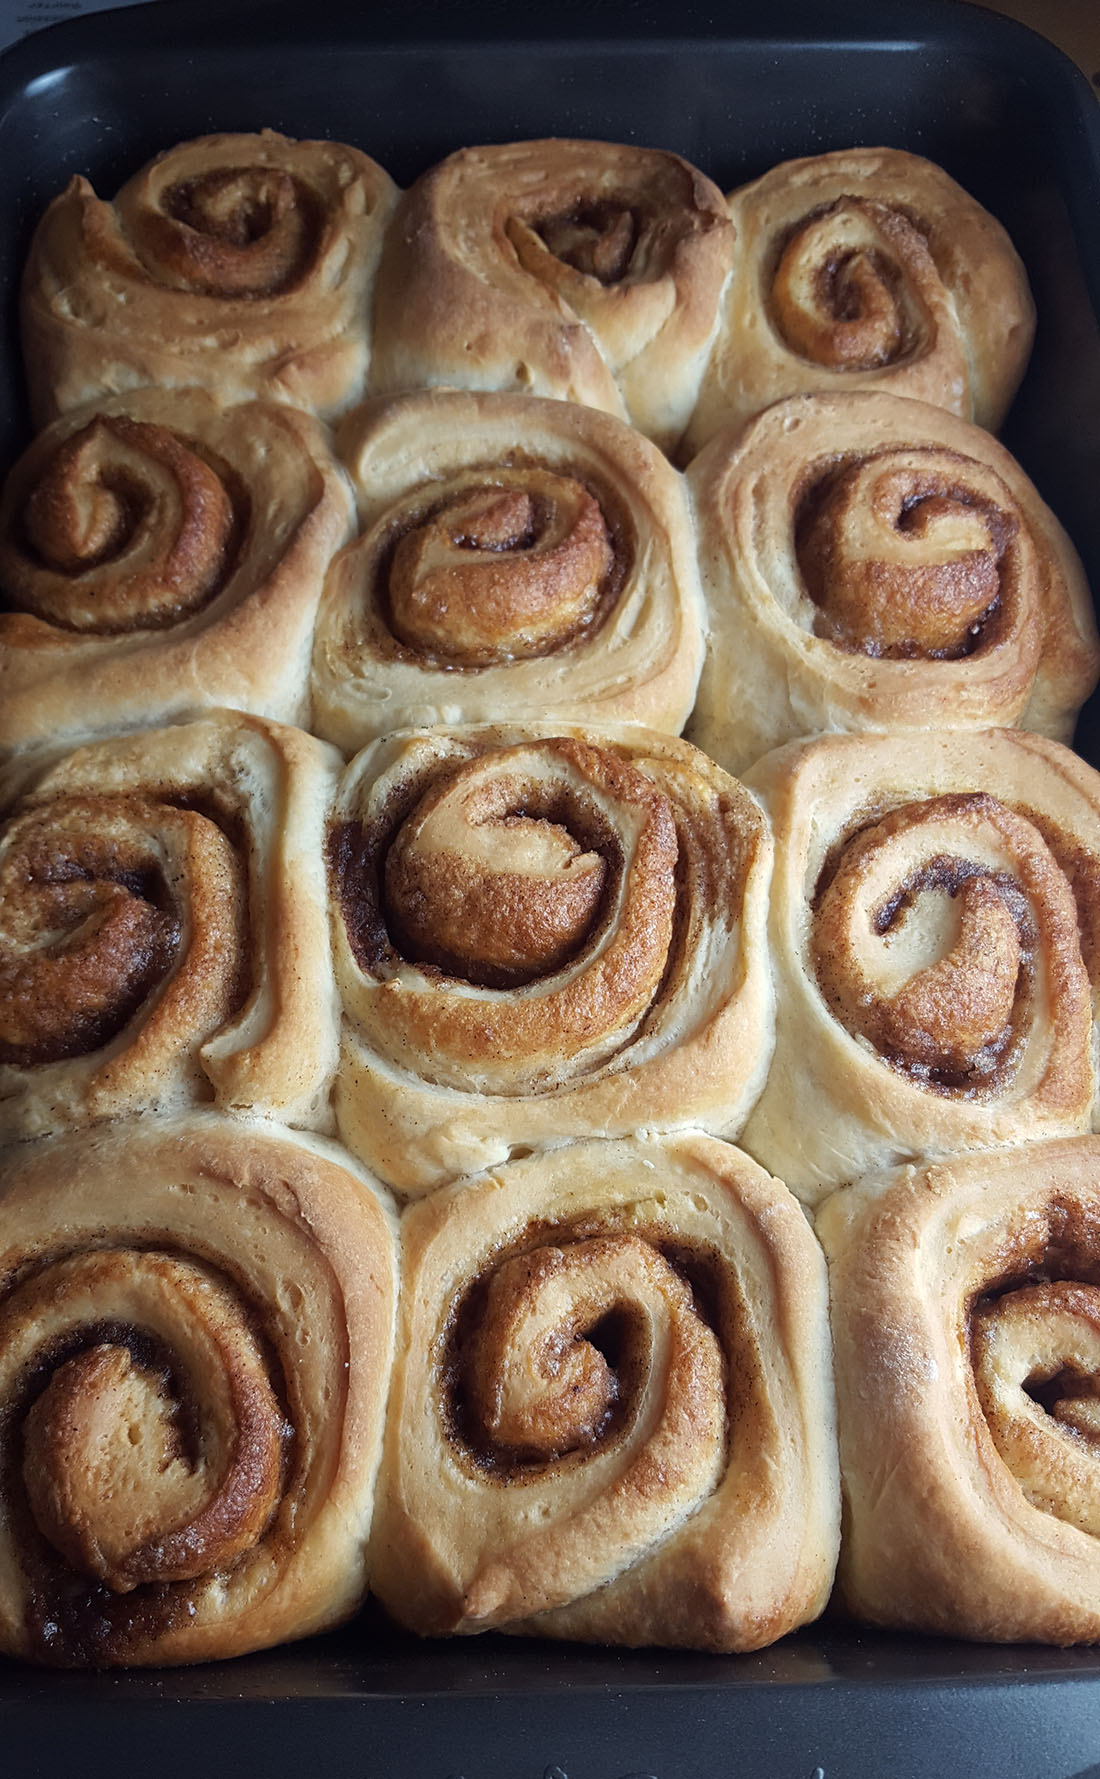 Golden brown Freshly baked vanilla bean cinnamon buns